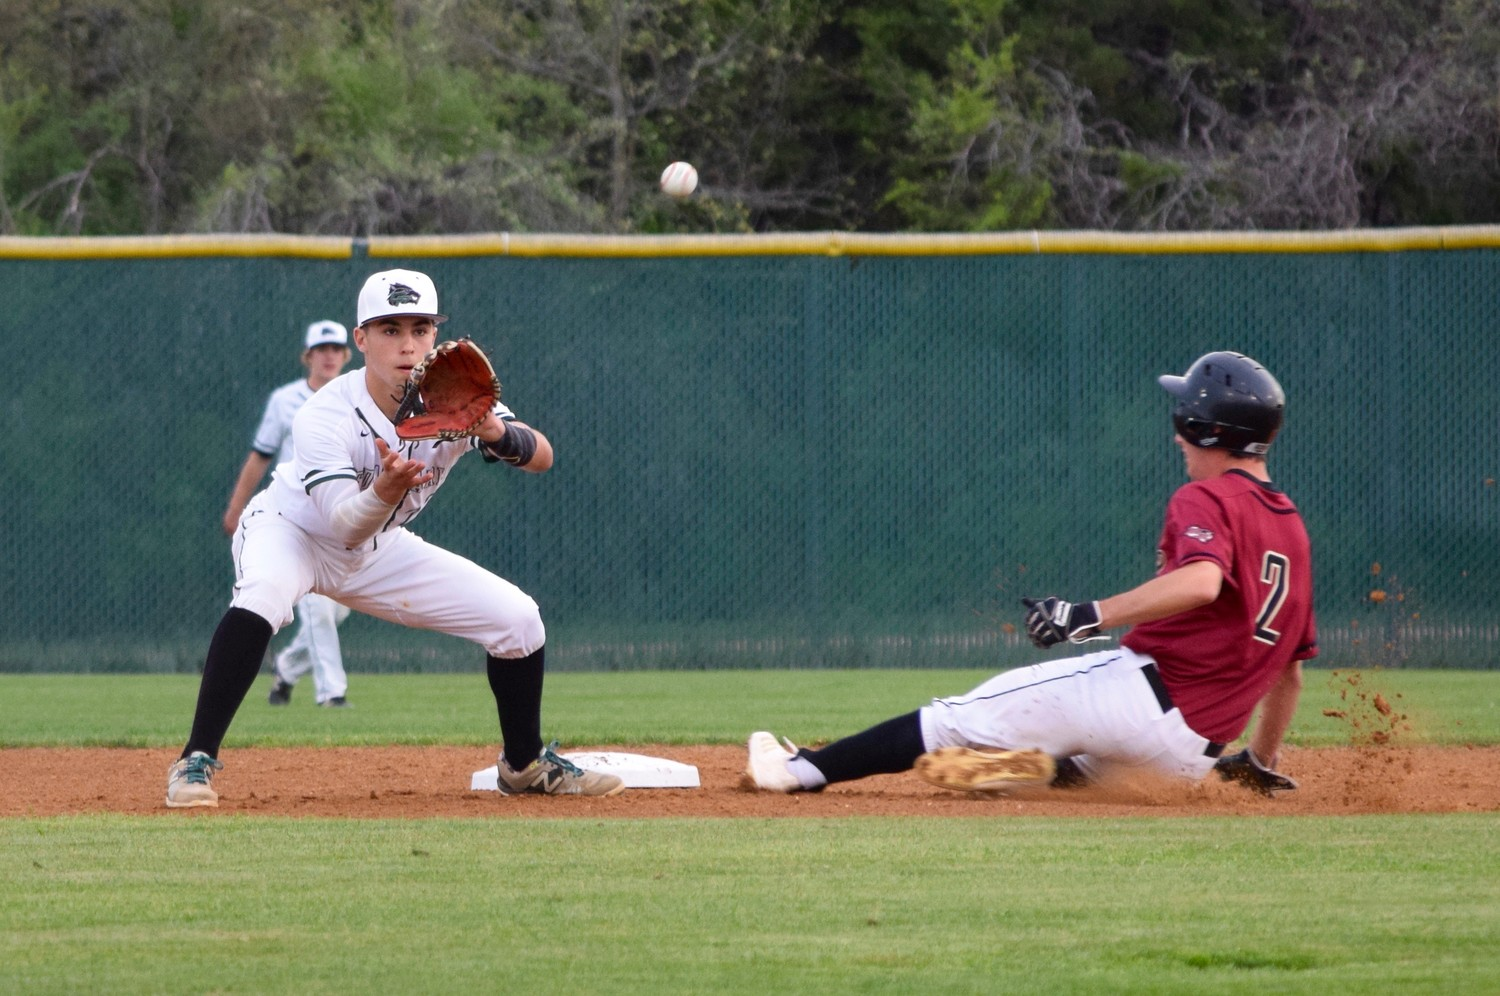 Ryder Hernandez, right, and Cedar Park lost to Rouse 4-0 at home on Friday night.